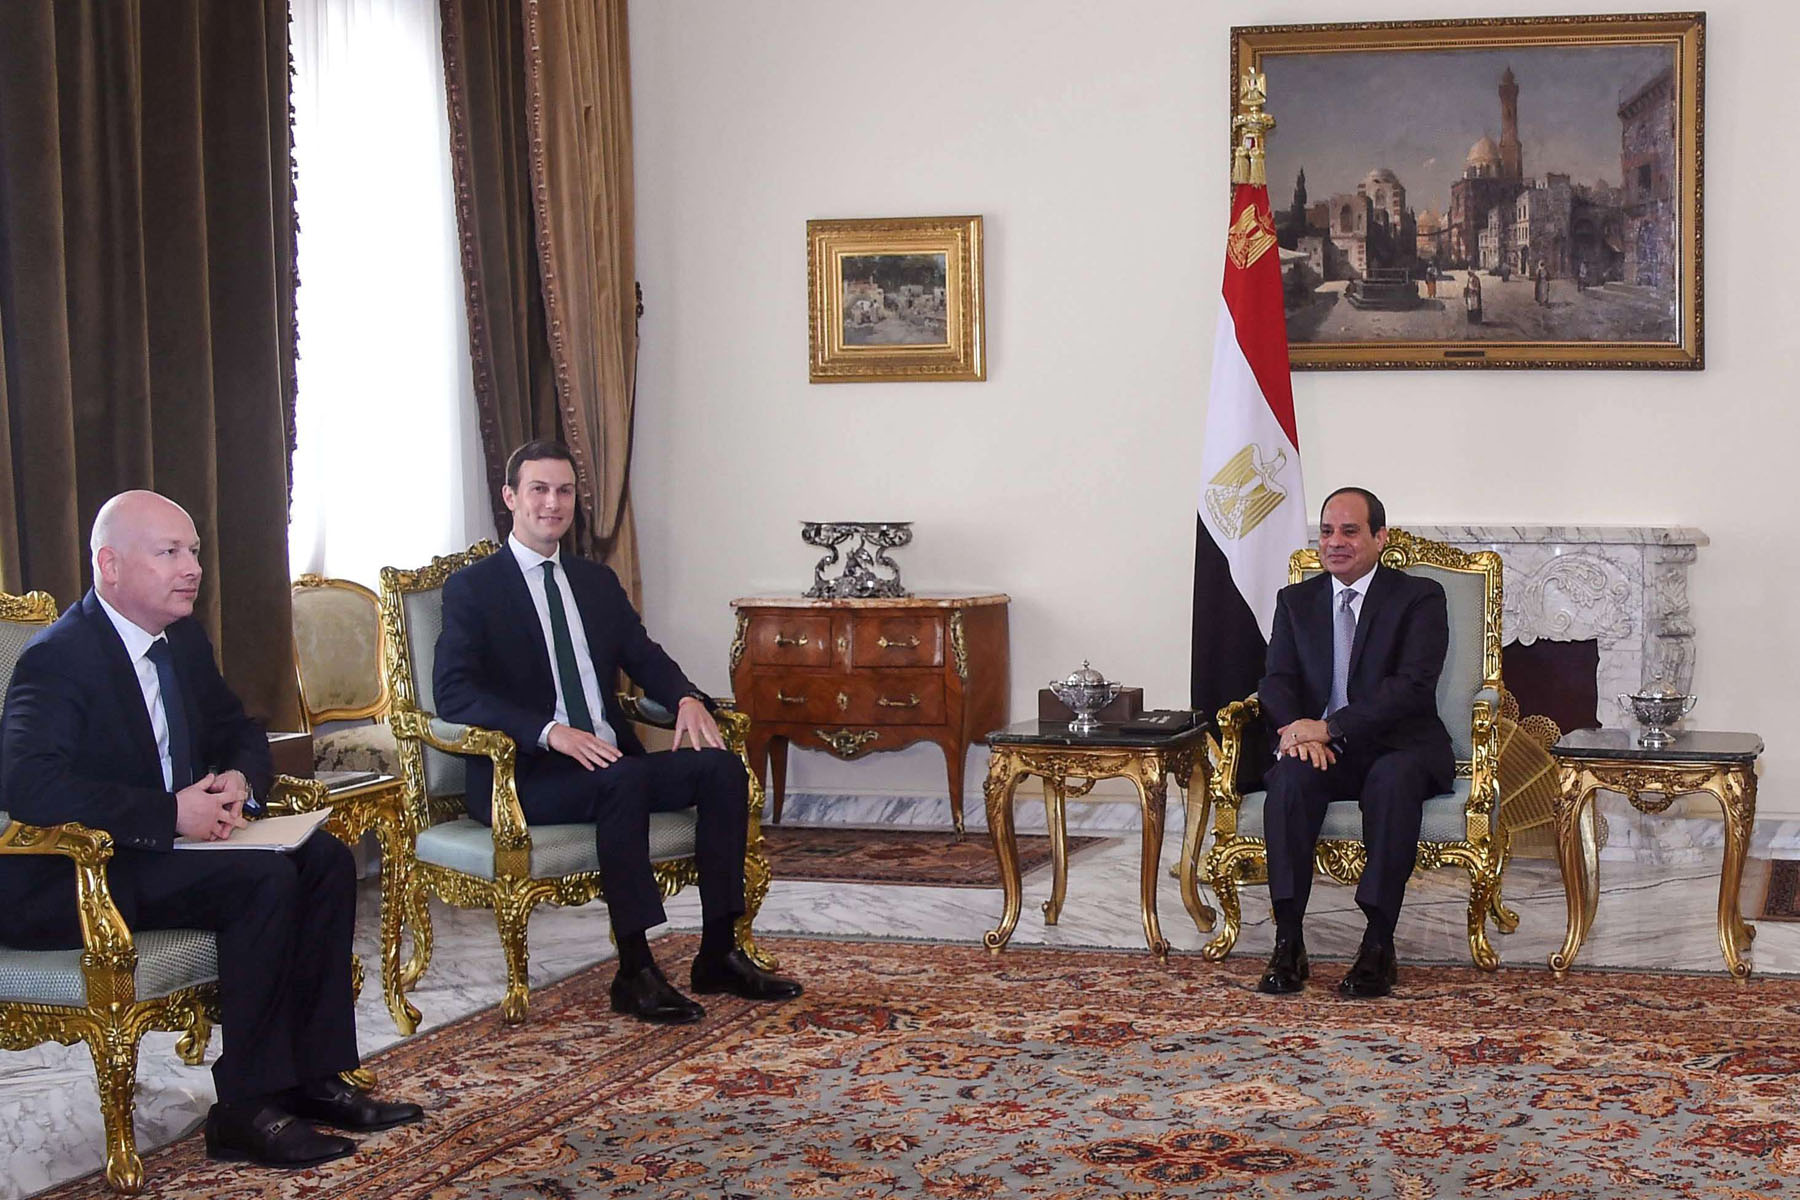 A 2018 file picture shows Egyptian President Abdel Fattah al-Sisi (R) meeting with the US president's special envoy Jason Greenblatt (L) and White House senior adviser Jared Kushner at the presidential palace in the capital Cairo. (AFP)